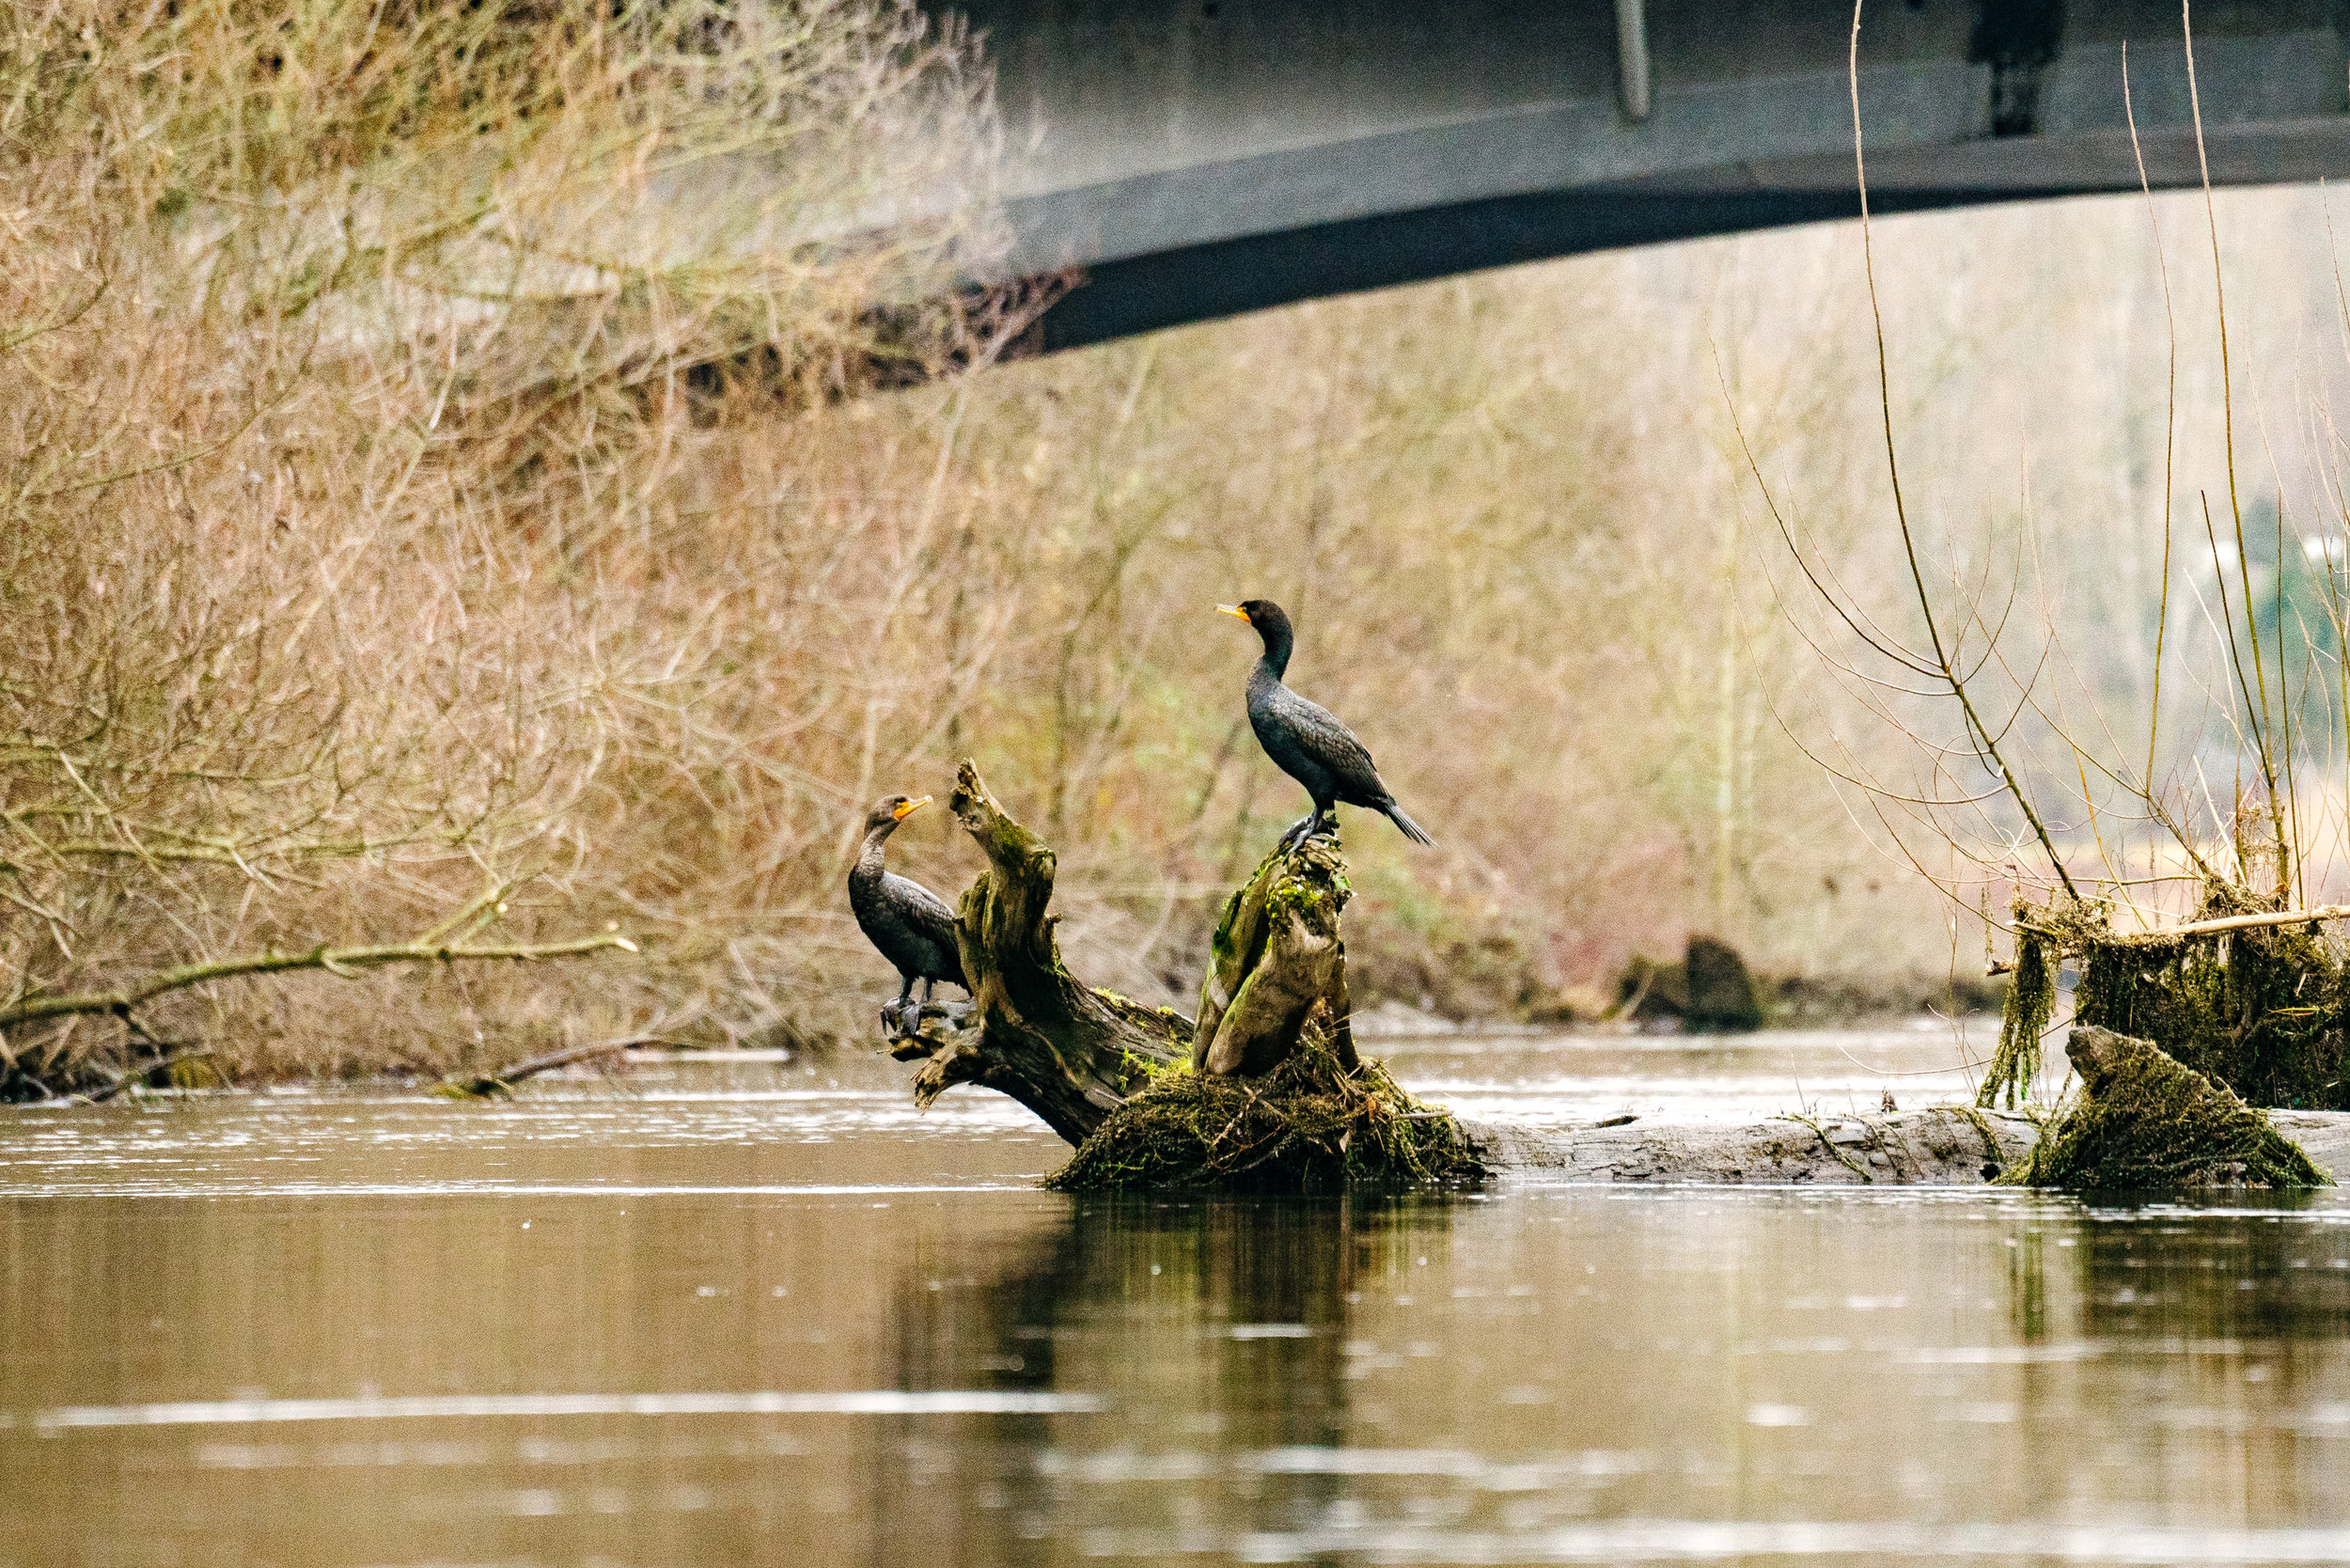 Double-Crested Cormorants on the Sammamish River in Redmond, Washington